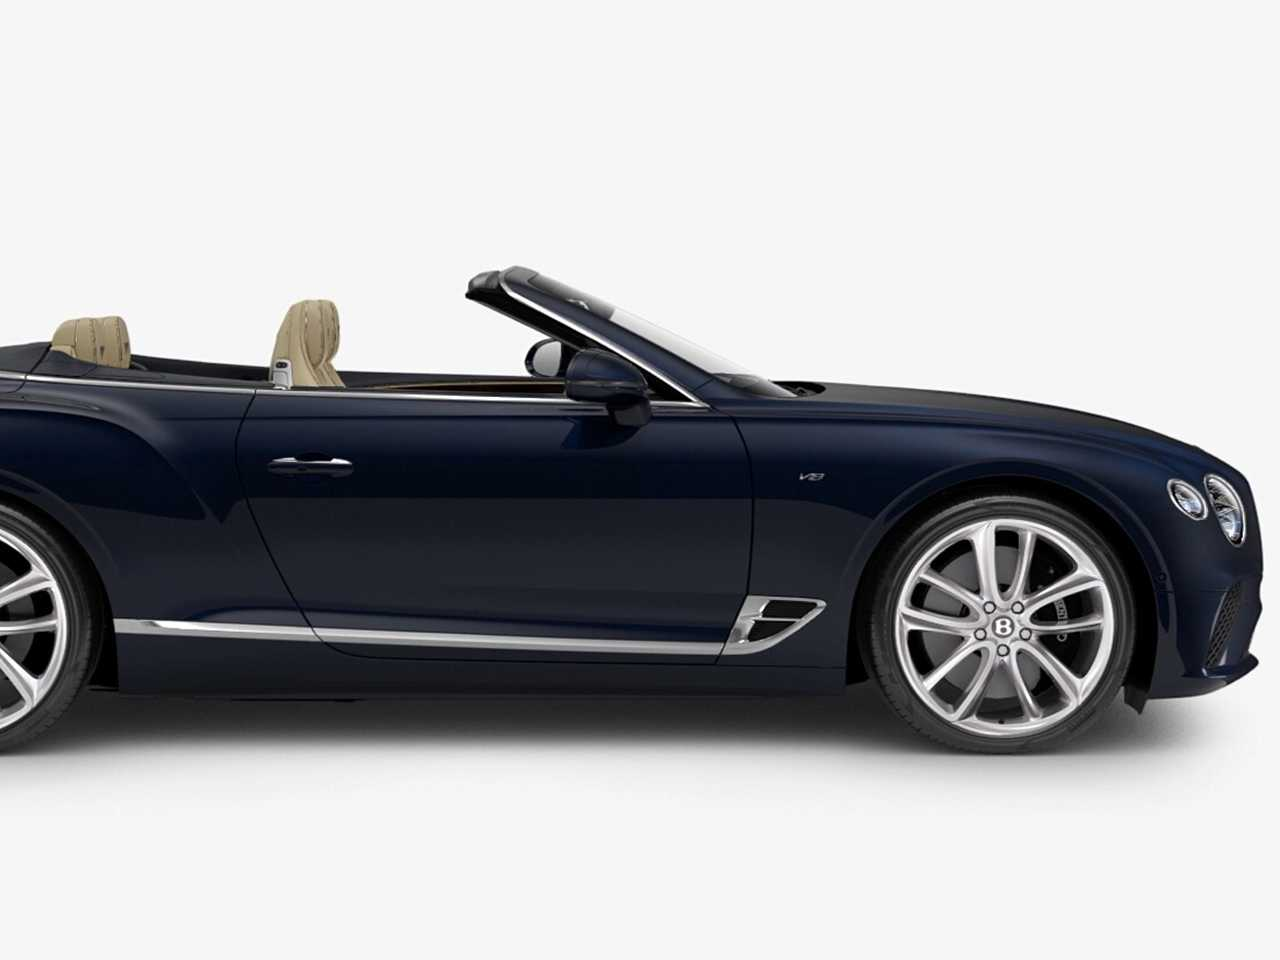 Bentley GTC Cab